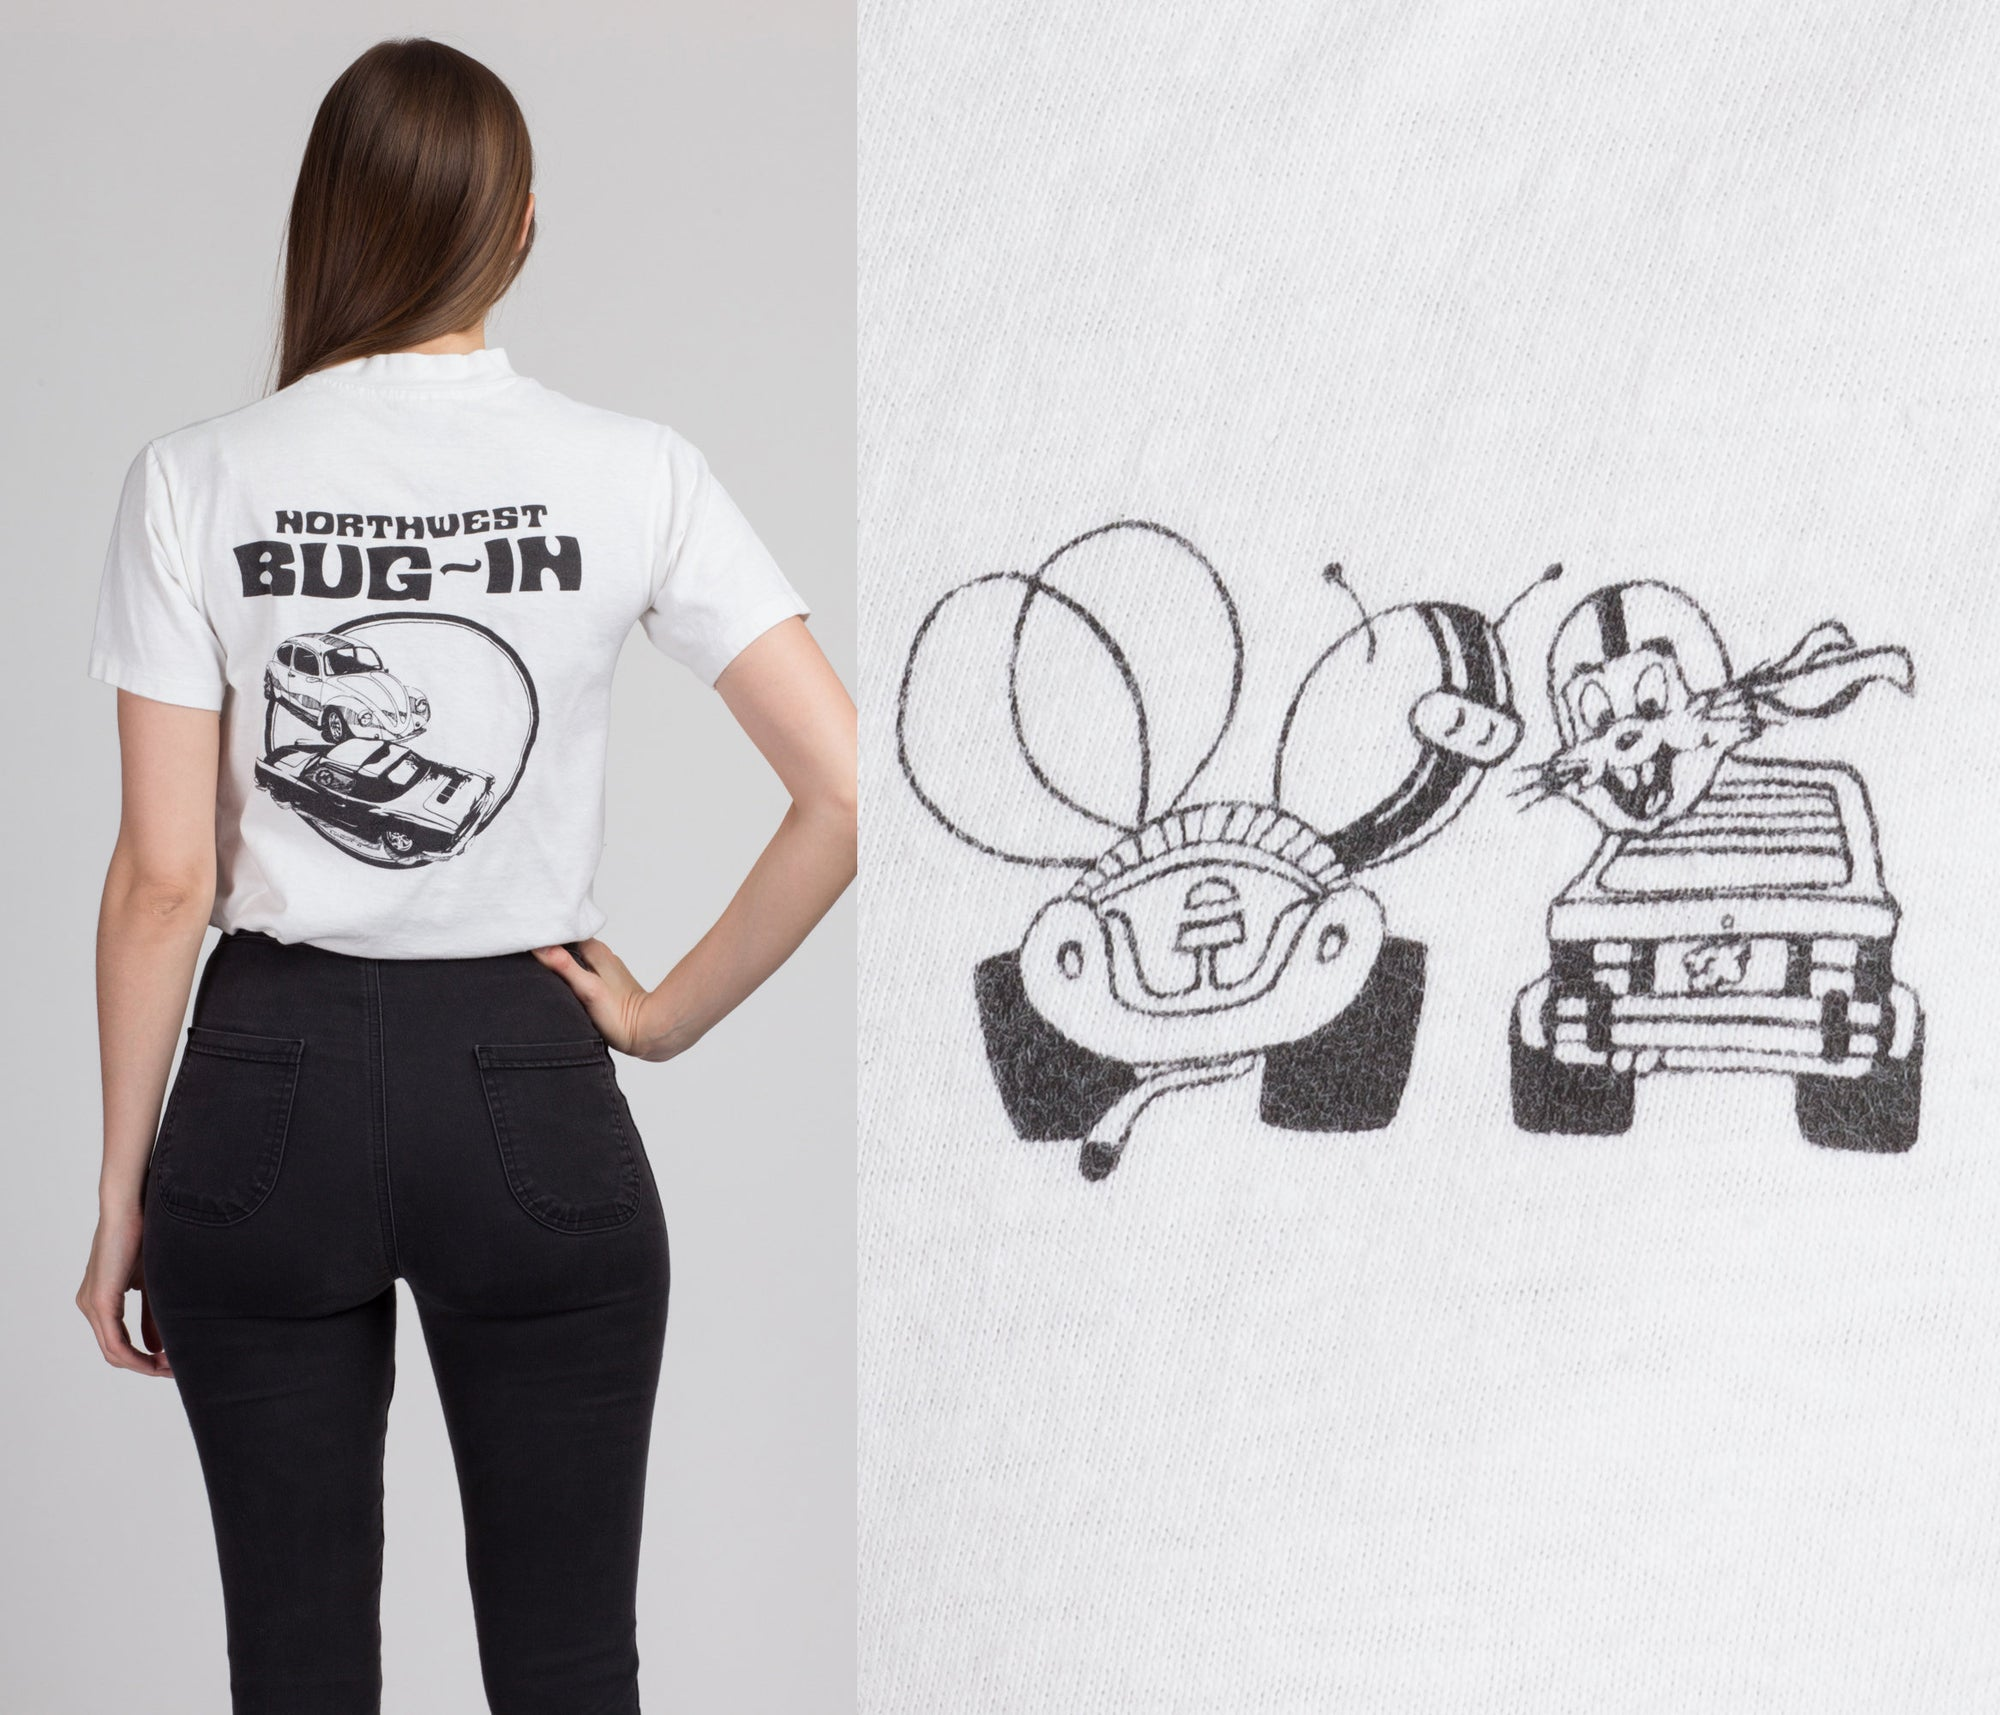 80s Northwest Bug-In Classic Car Tee - Small